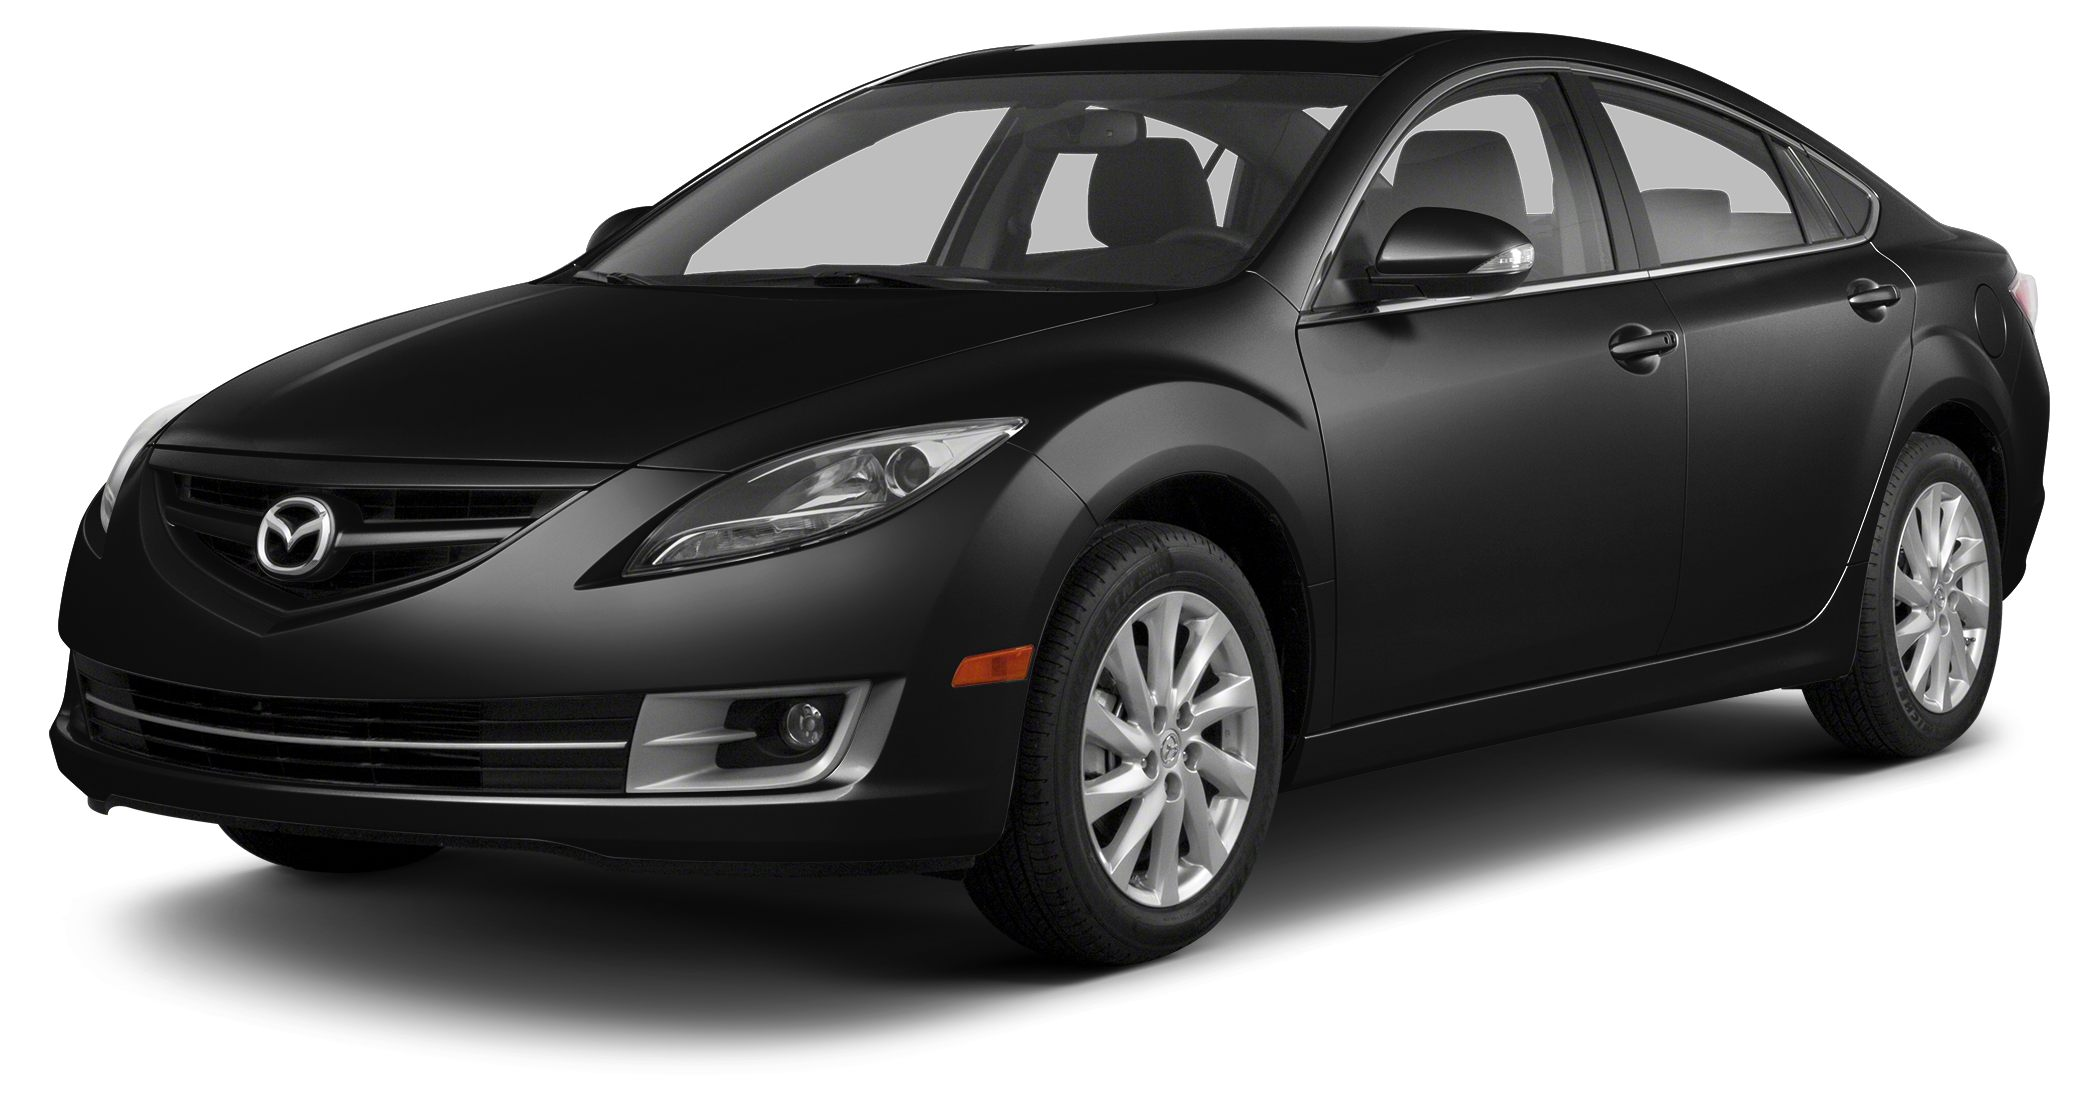 2013 Mazda MAZDA6 i Sport OUR PRICESYoure probably wondering why our prices are so much lower th